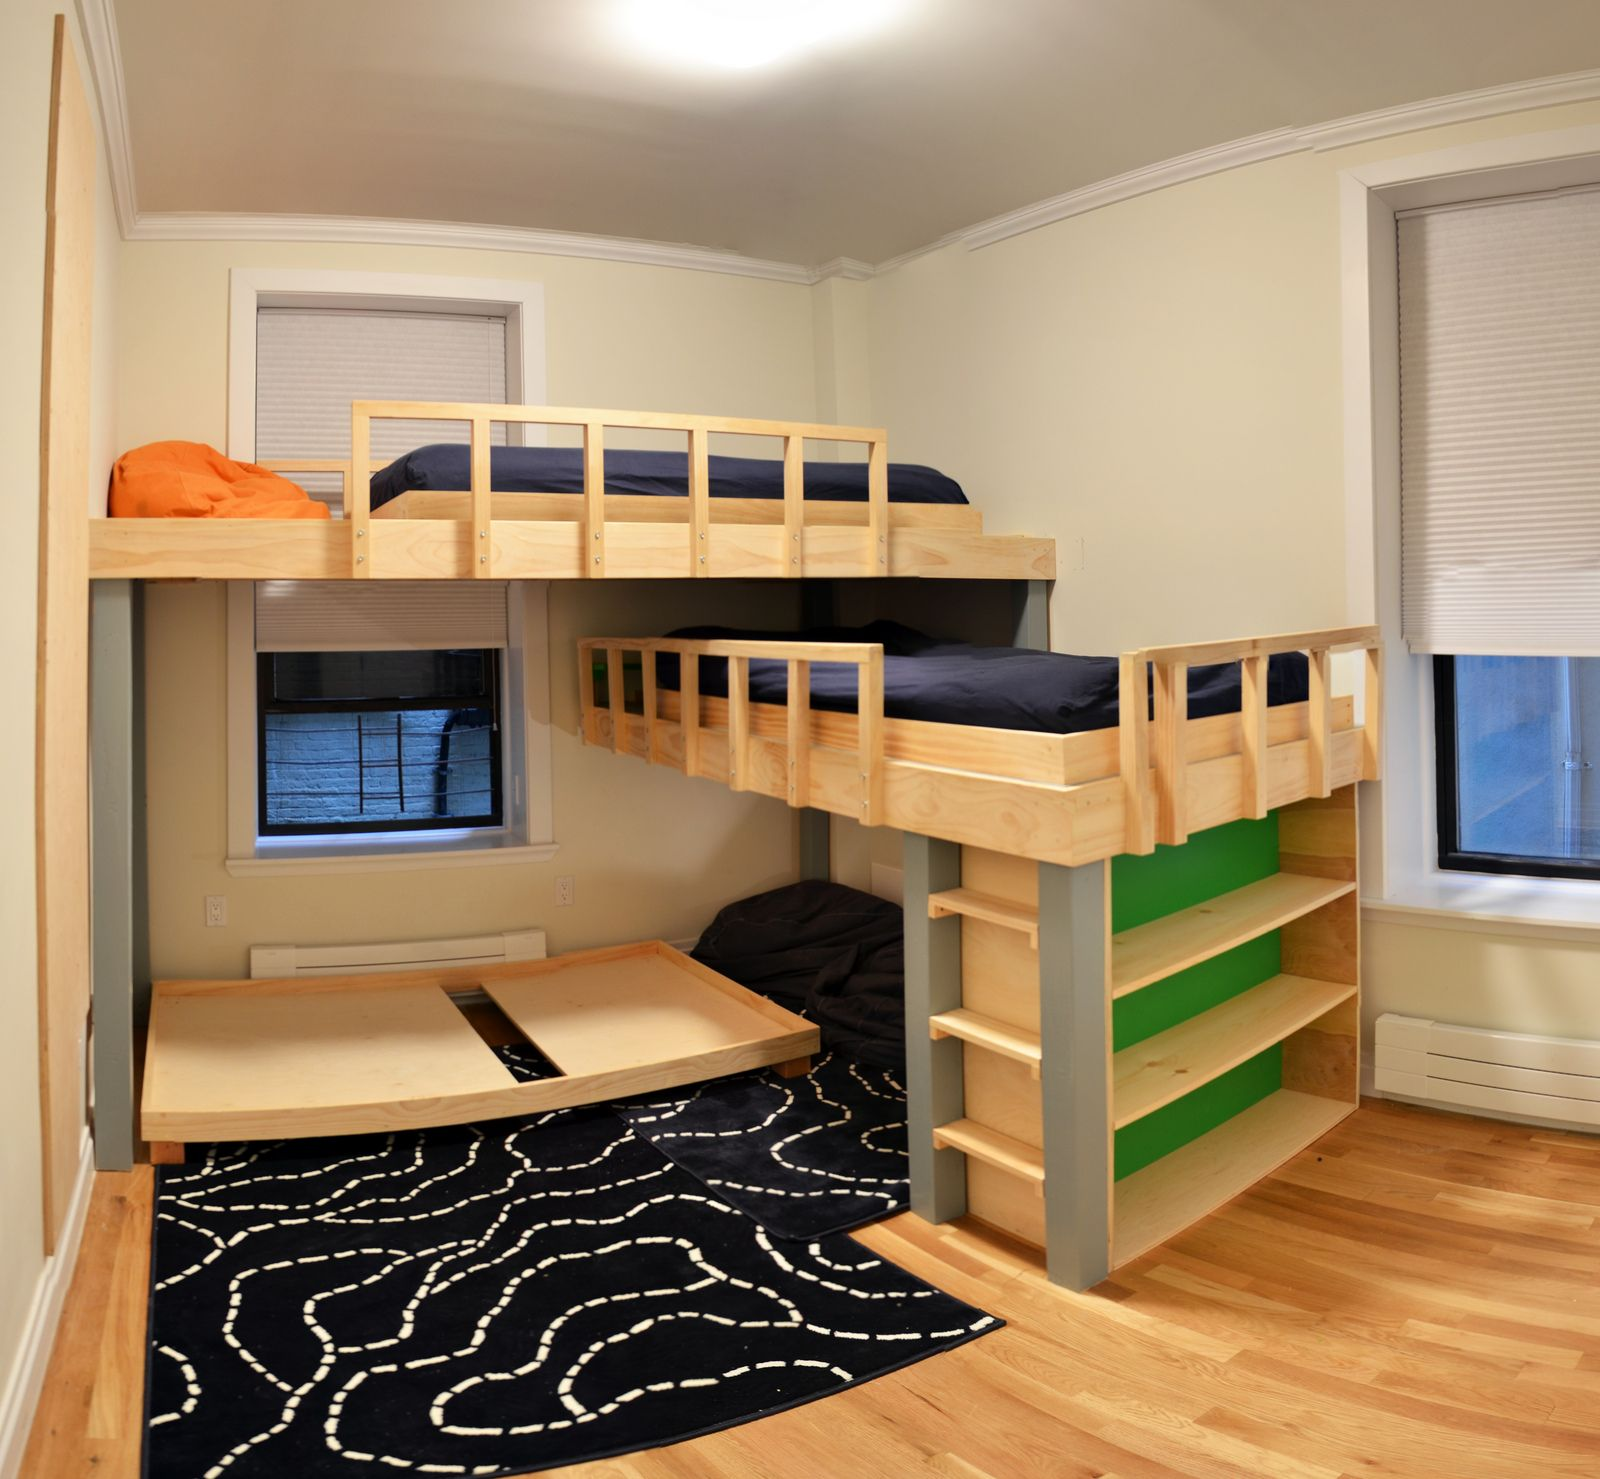 Three Level Bunk Bed Ideas For The House Pinterest Bunk Beds